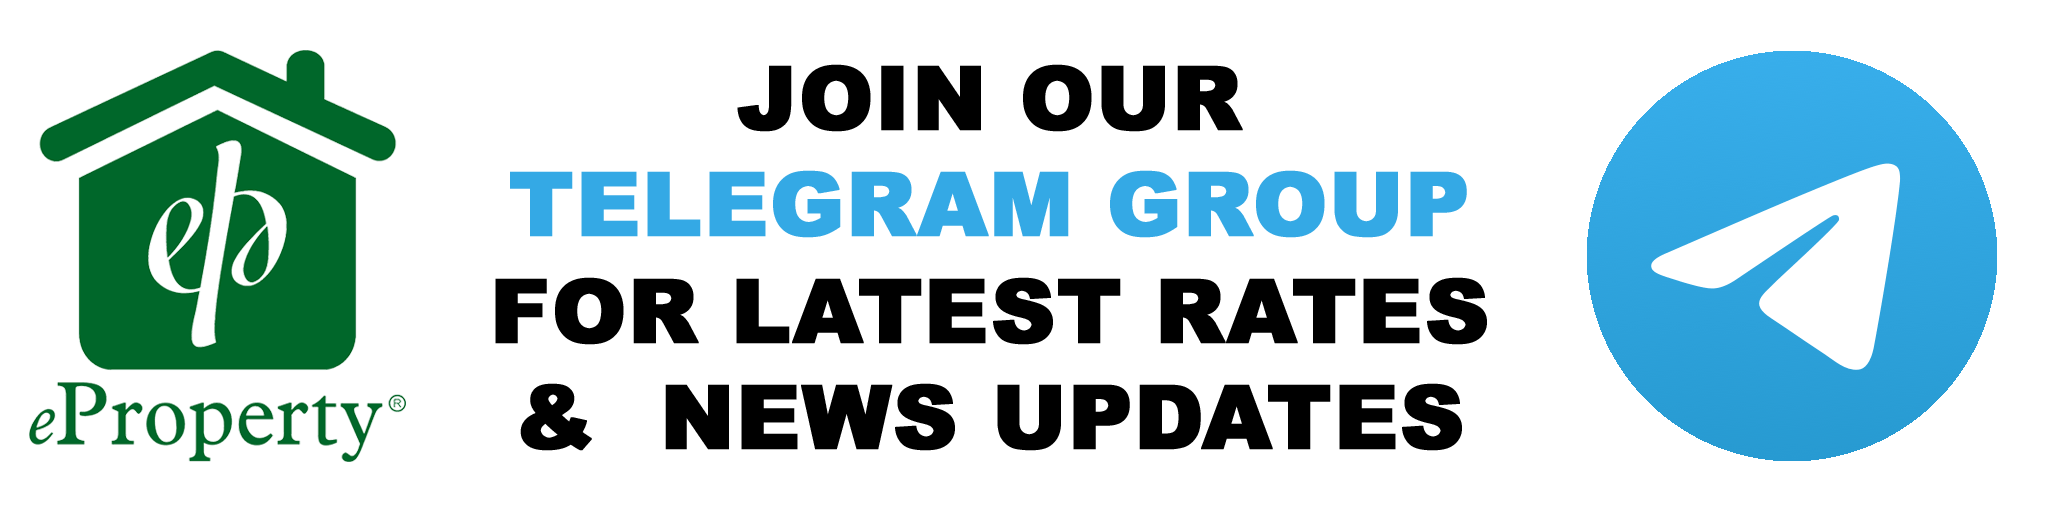 Join eProperty Telegram Groups for Latest DHA Files Rate and News Update